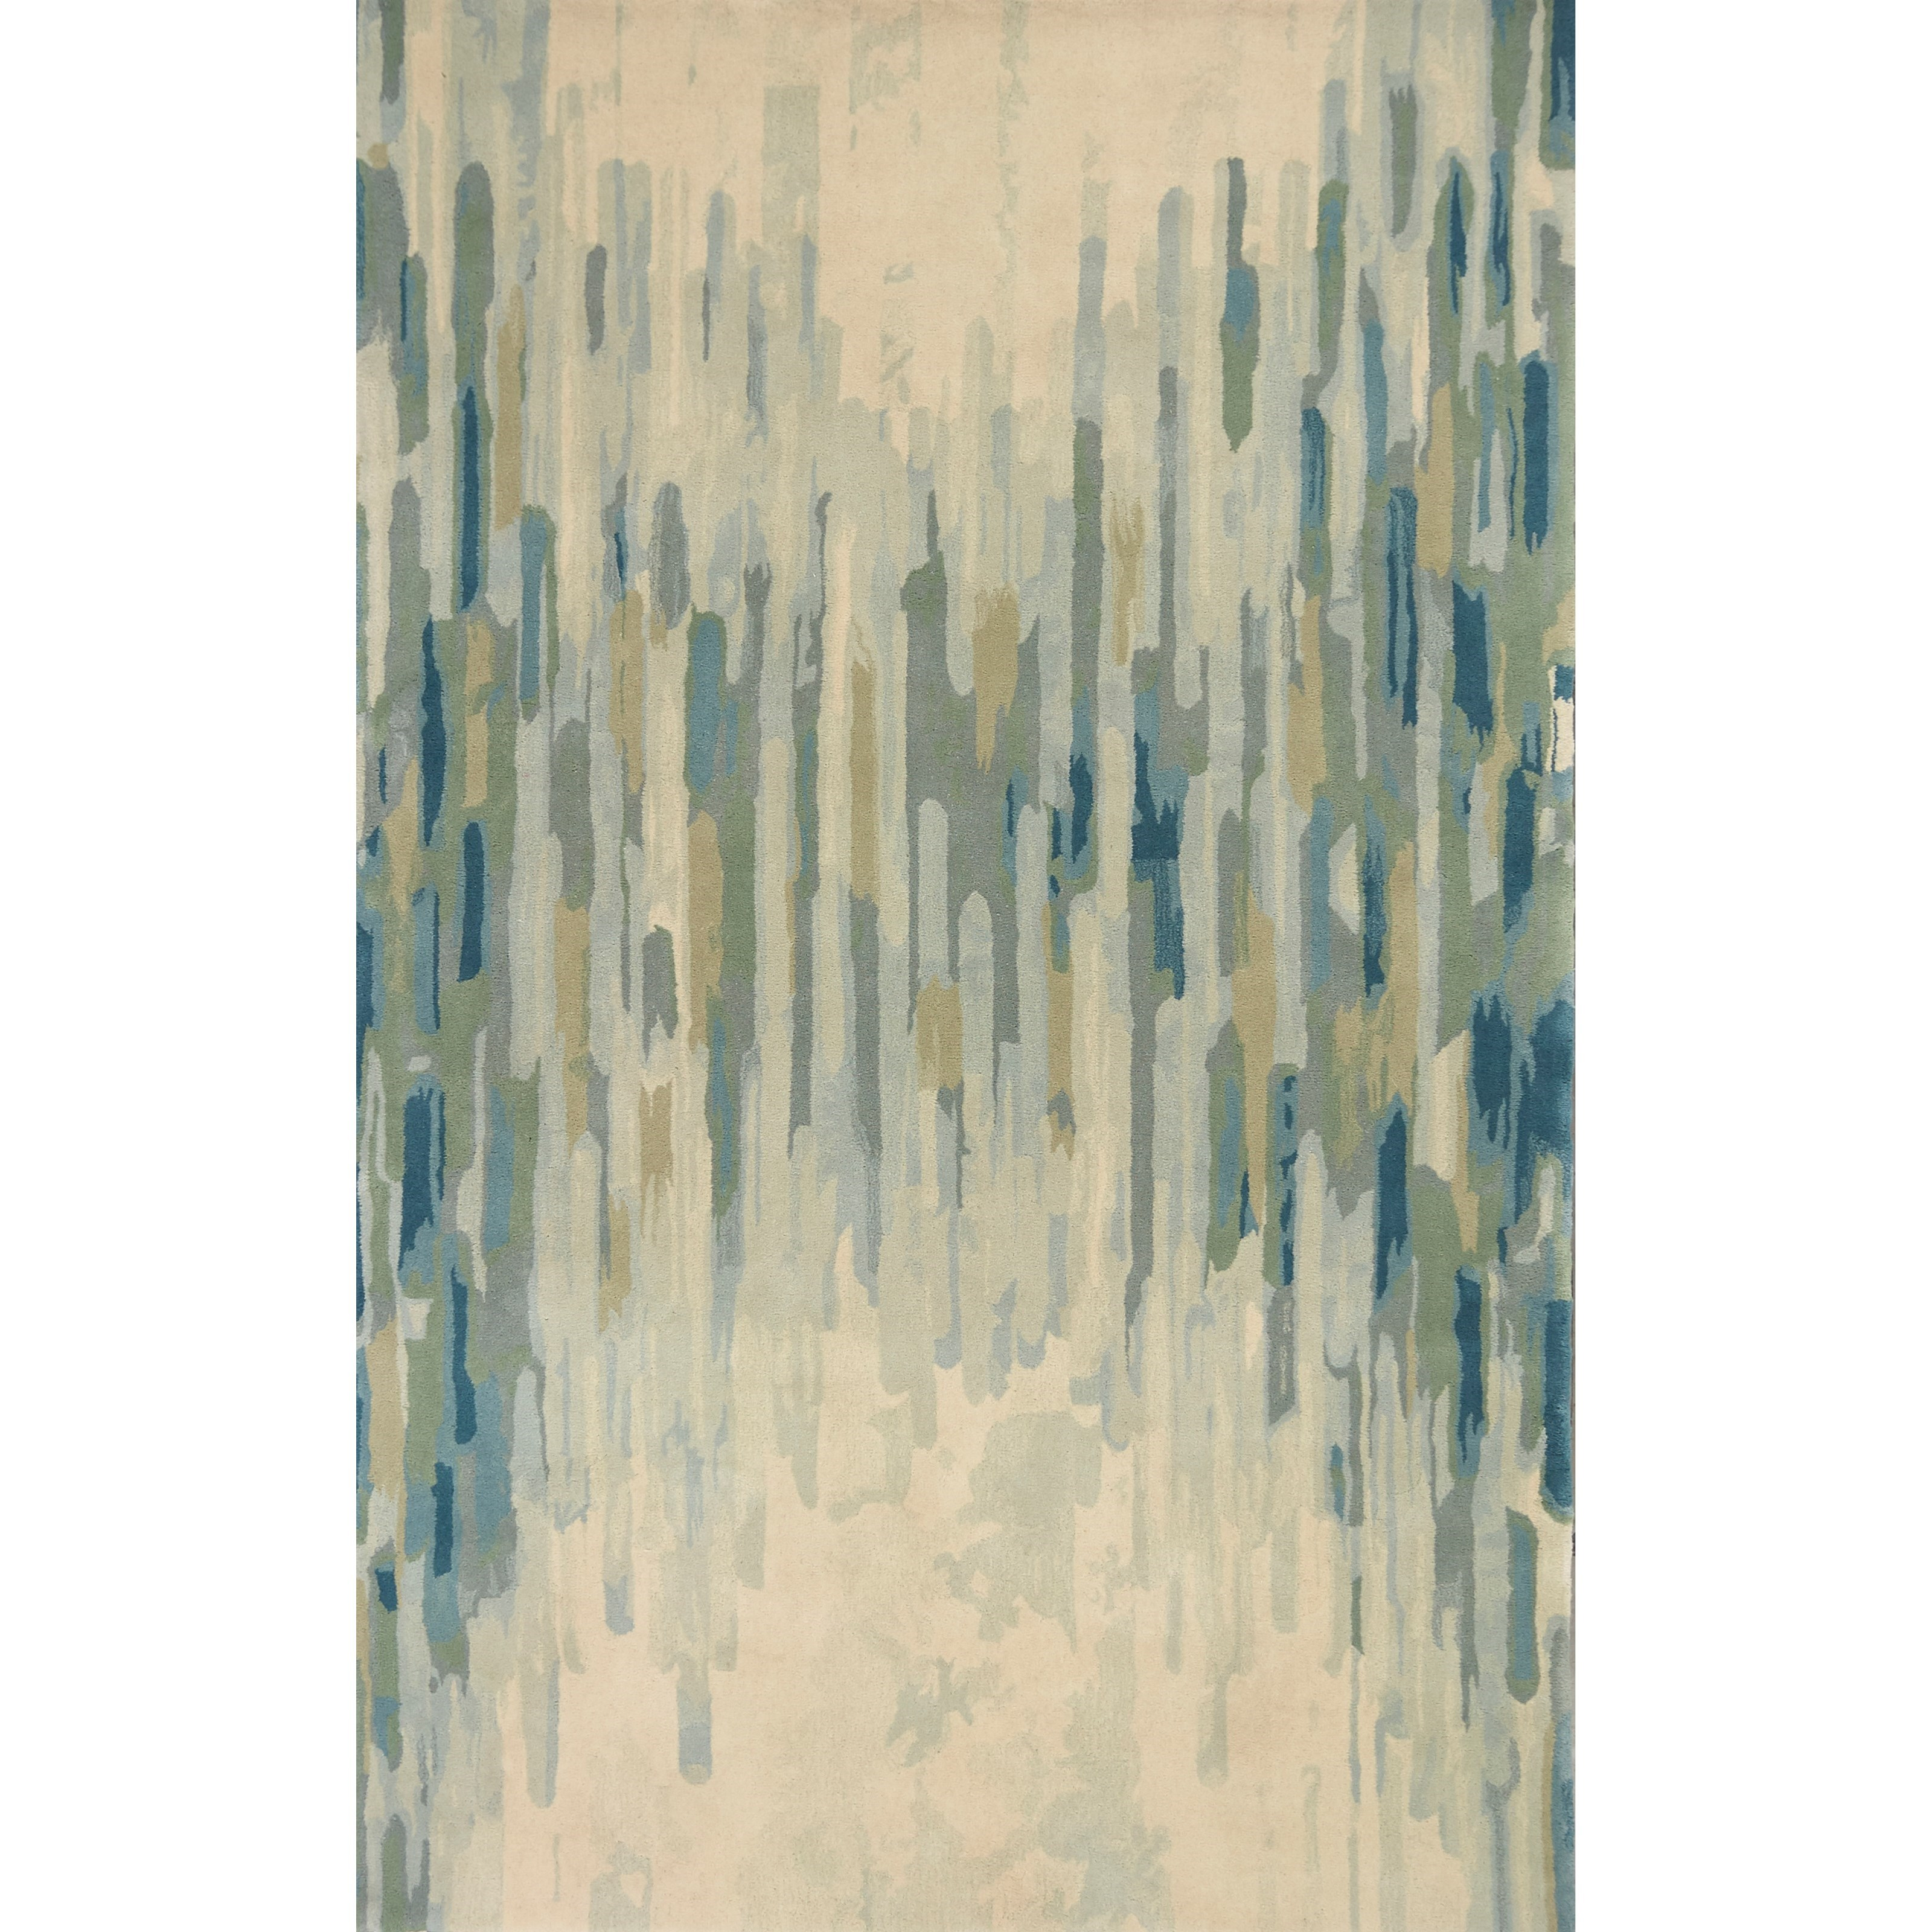 Whisper 8' X 5' Area Rug by Kas at Zak's Home